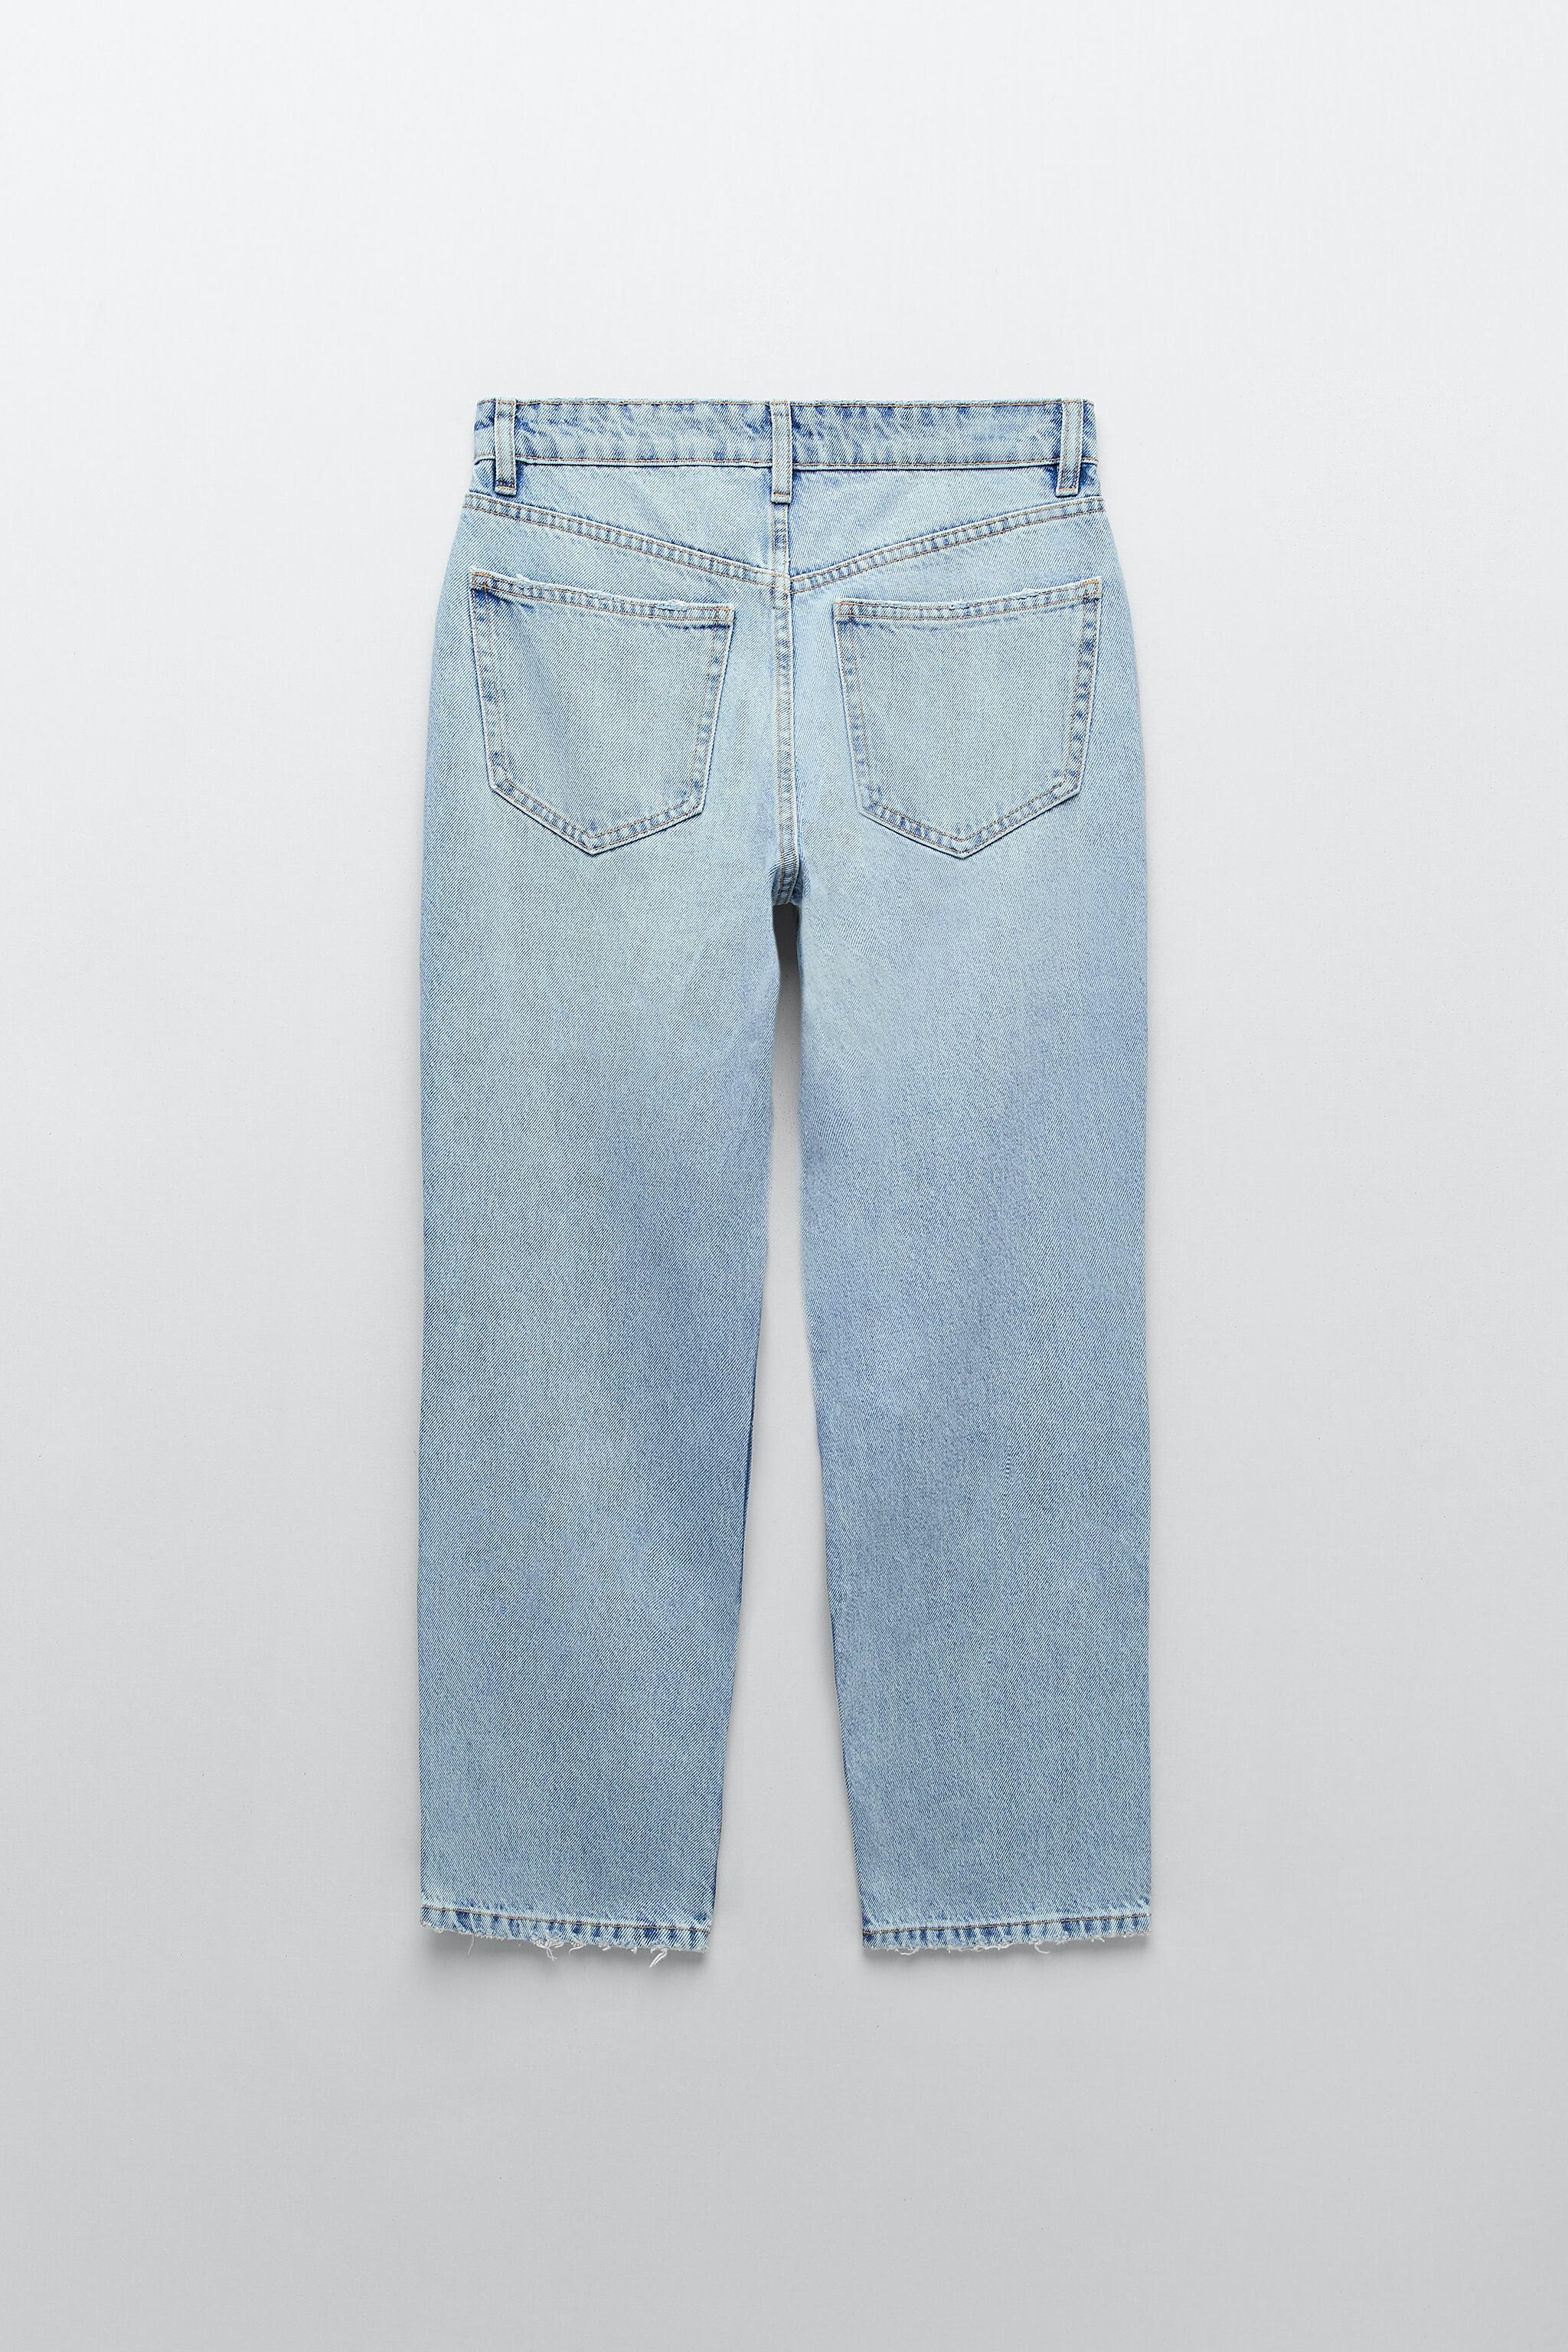 MID-RISE STRAIGHT LEG ANKLE LENGTH JEANS 6